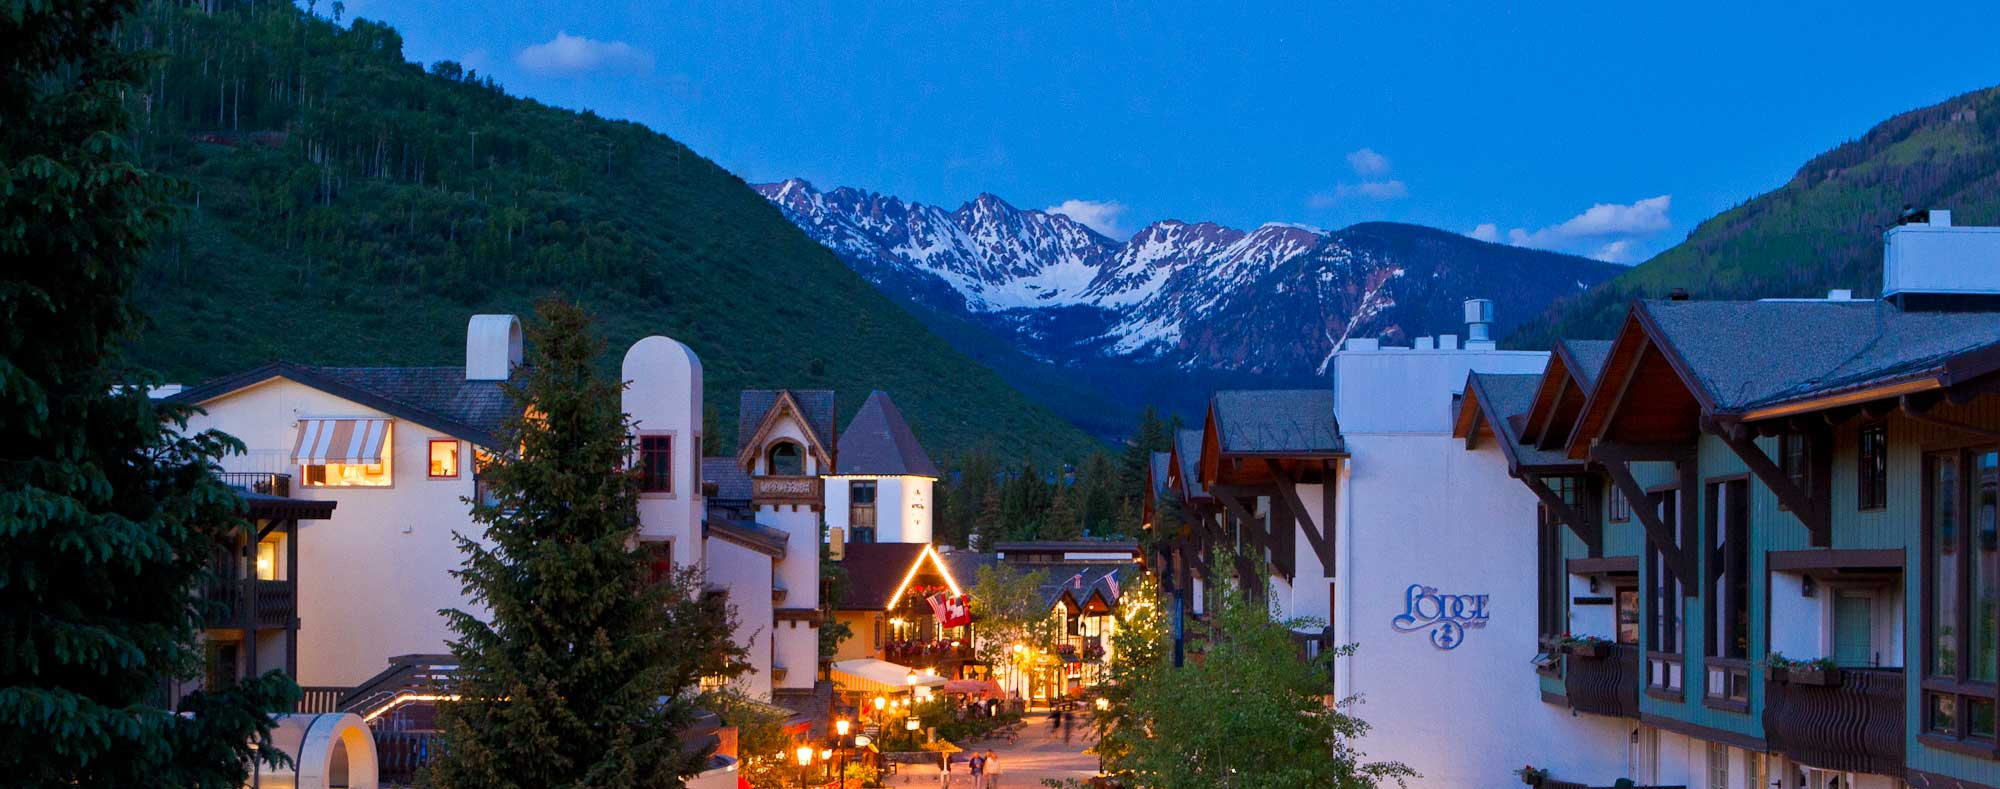 Four Colorado Thanksgiving Getaways for Relaxation